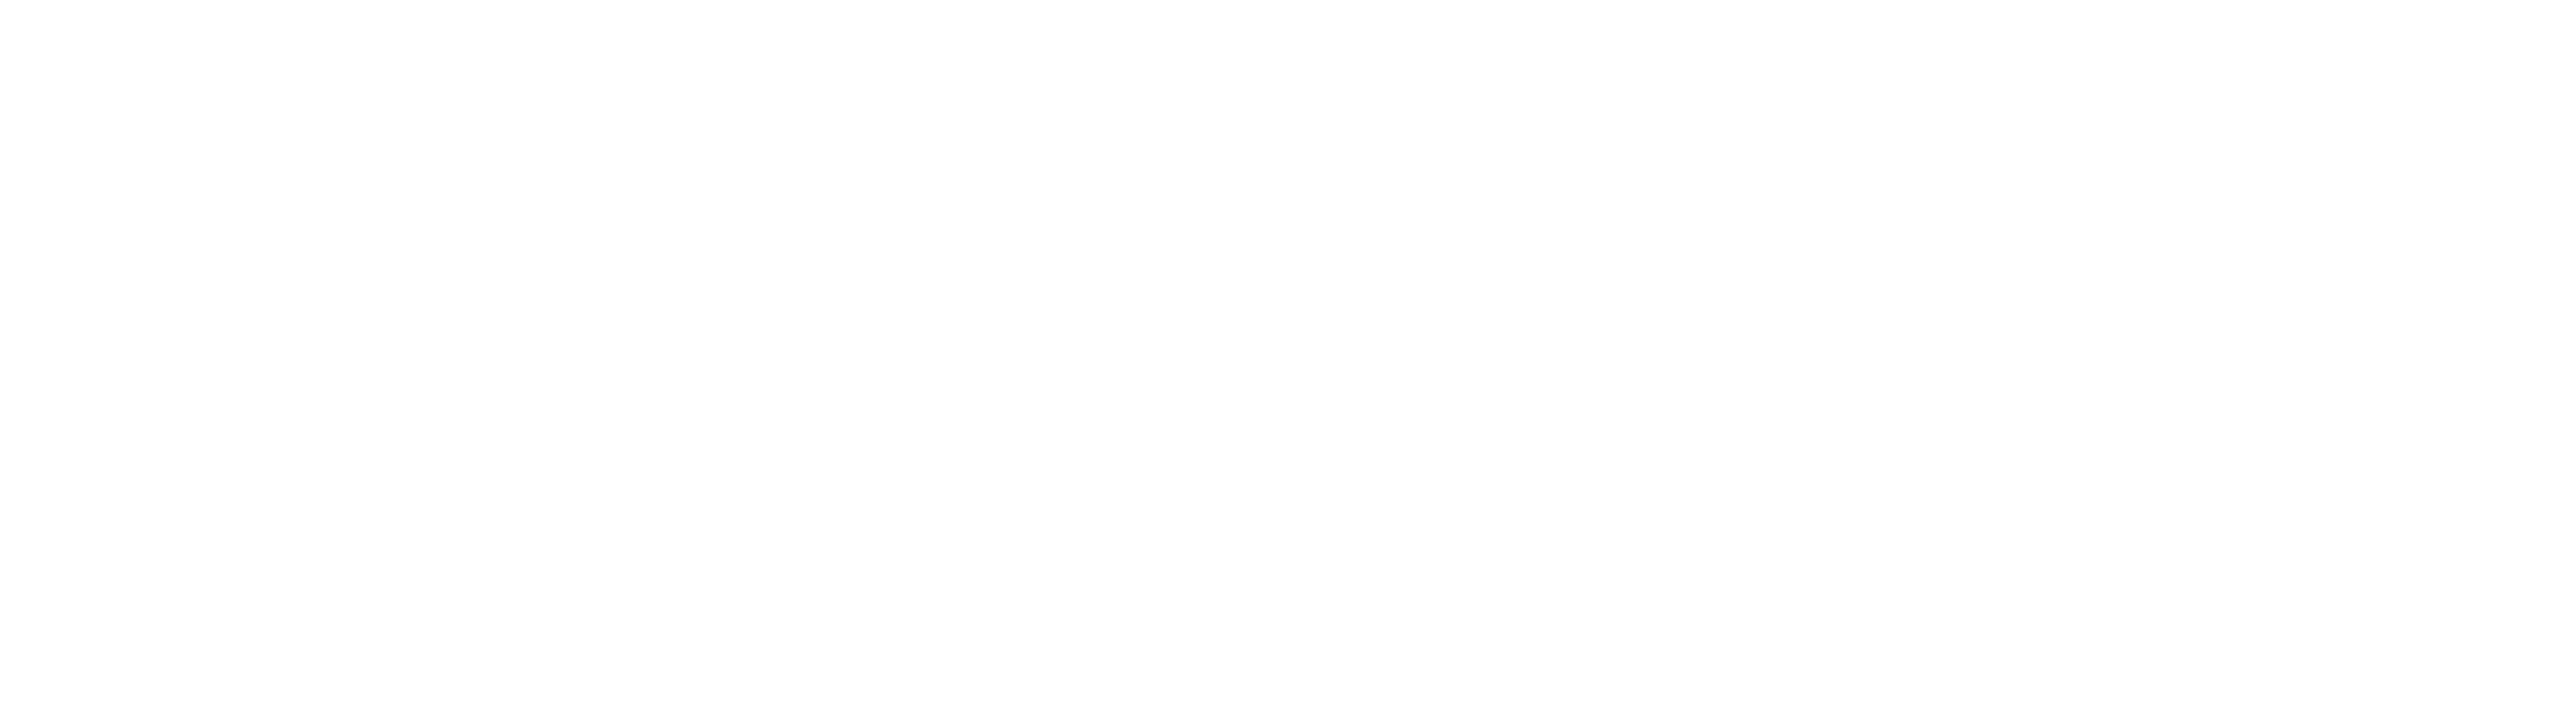 Kolbe Flower Shop - Flower Delivery in Seguin, TX